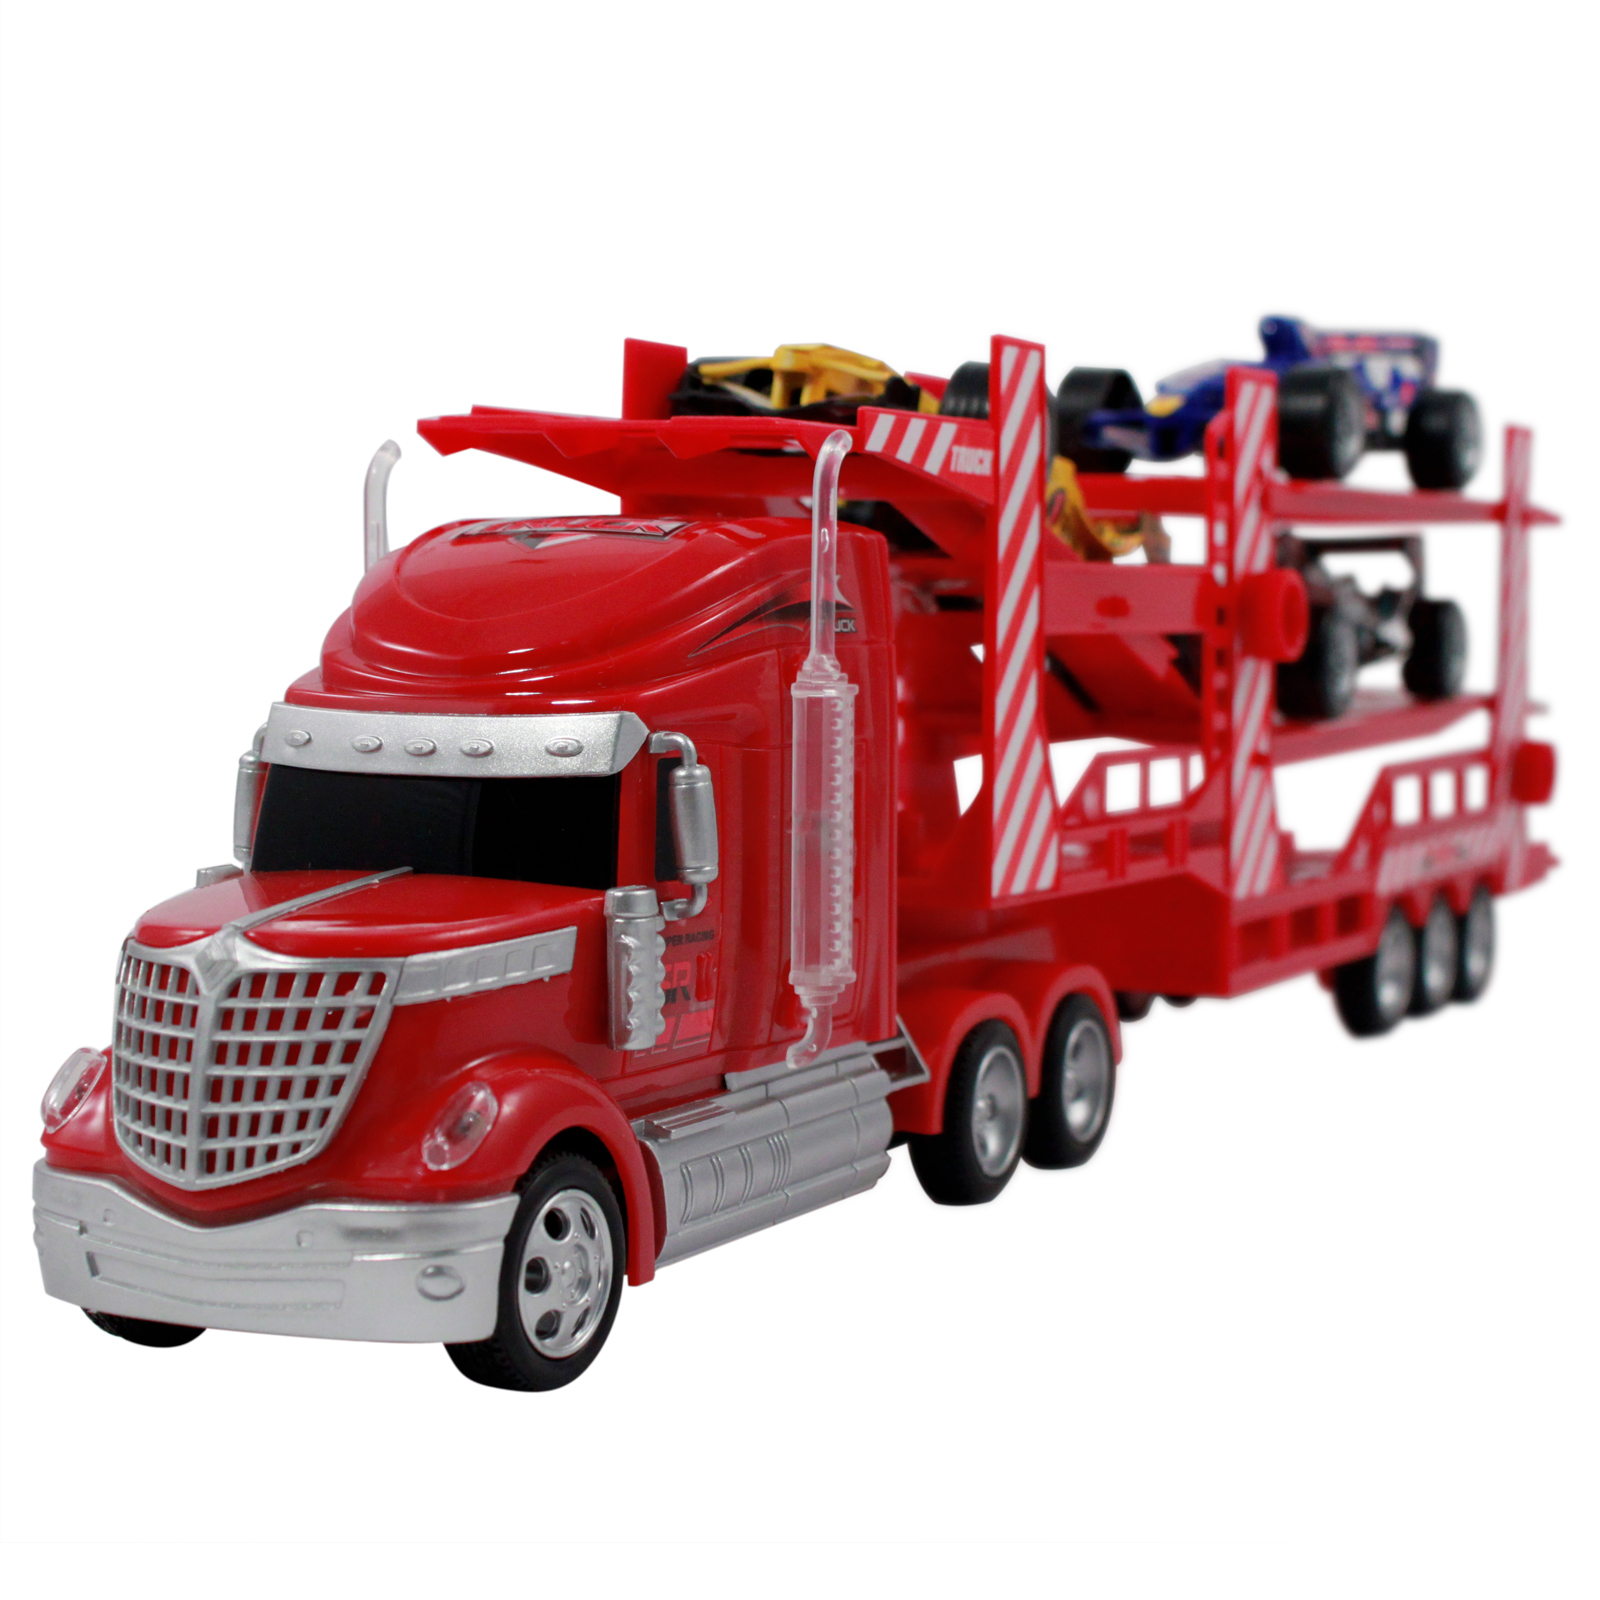 Toy Car Carrier : Rc race car transport carrier remote control semi truck